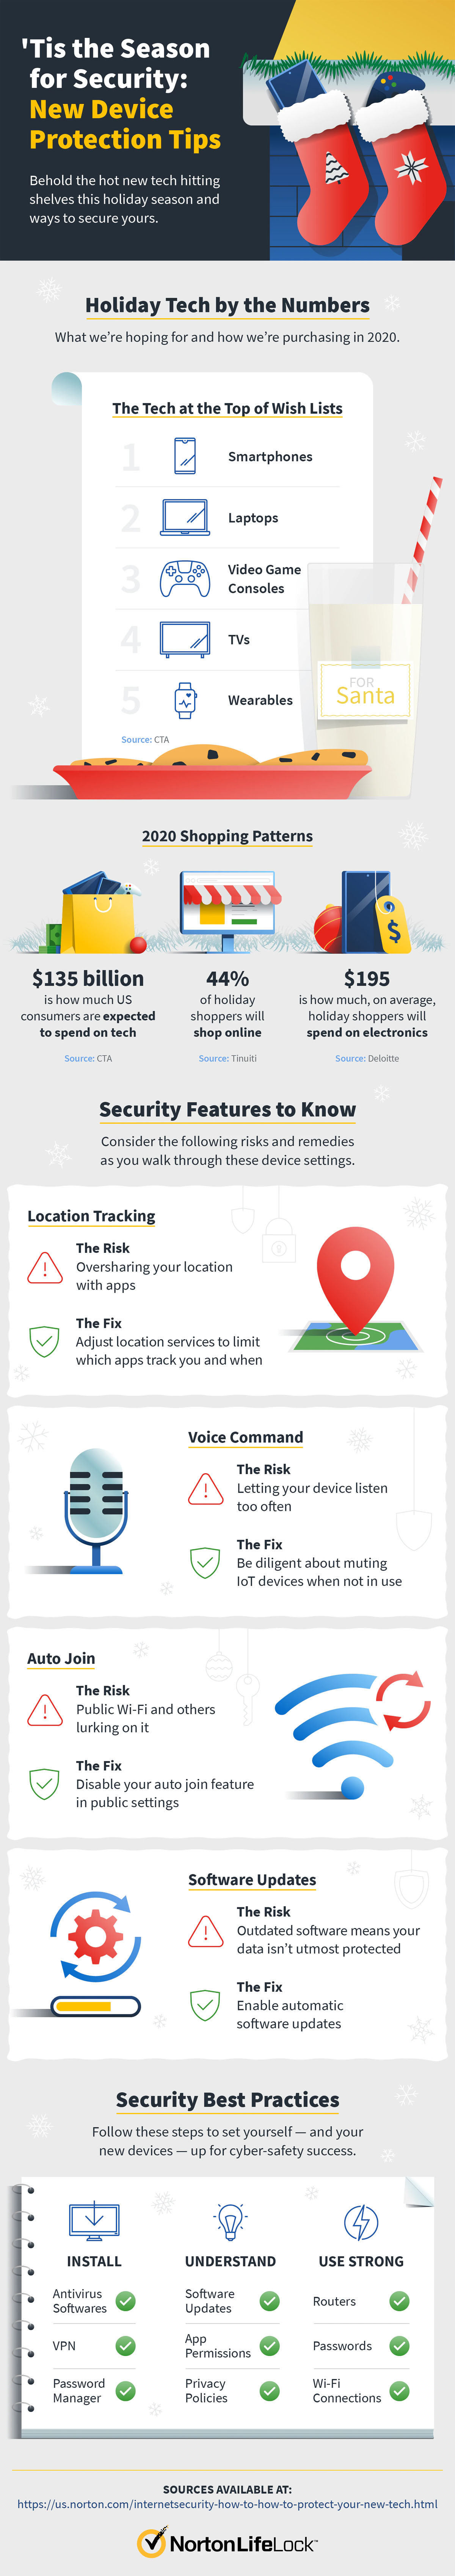 'Tis the Season for Security: New Device Protection Tips